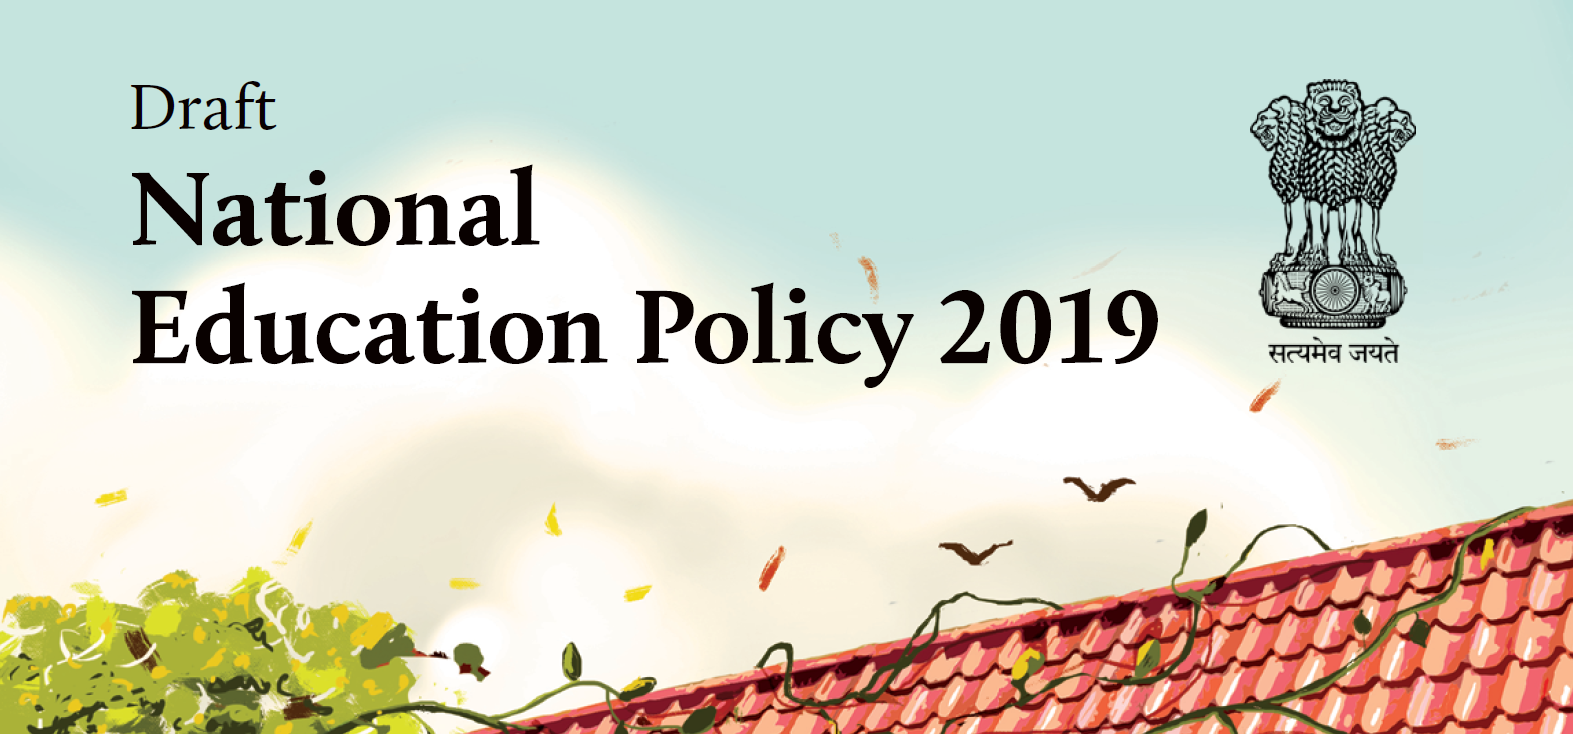 NEP 2019 wants Social Workers, not a profession for UGC, By Prof. Ranjana Sehgal